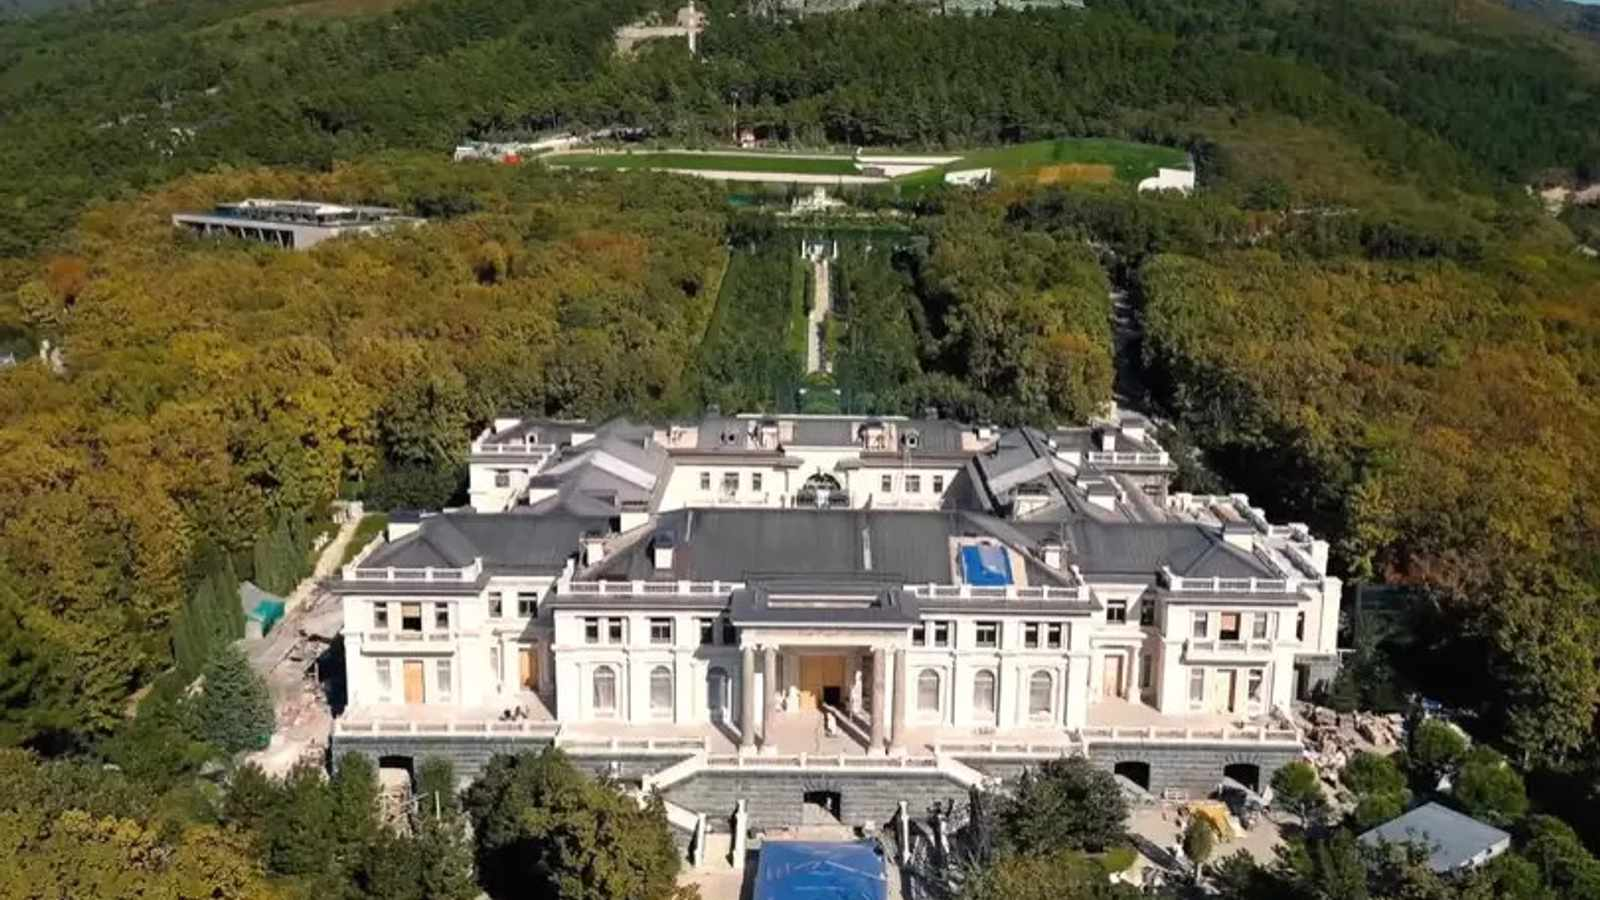 Everything we learnt about Putin's palace from Alexei Navalny's video